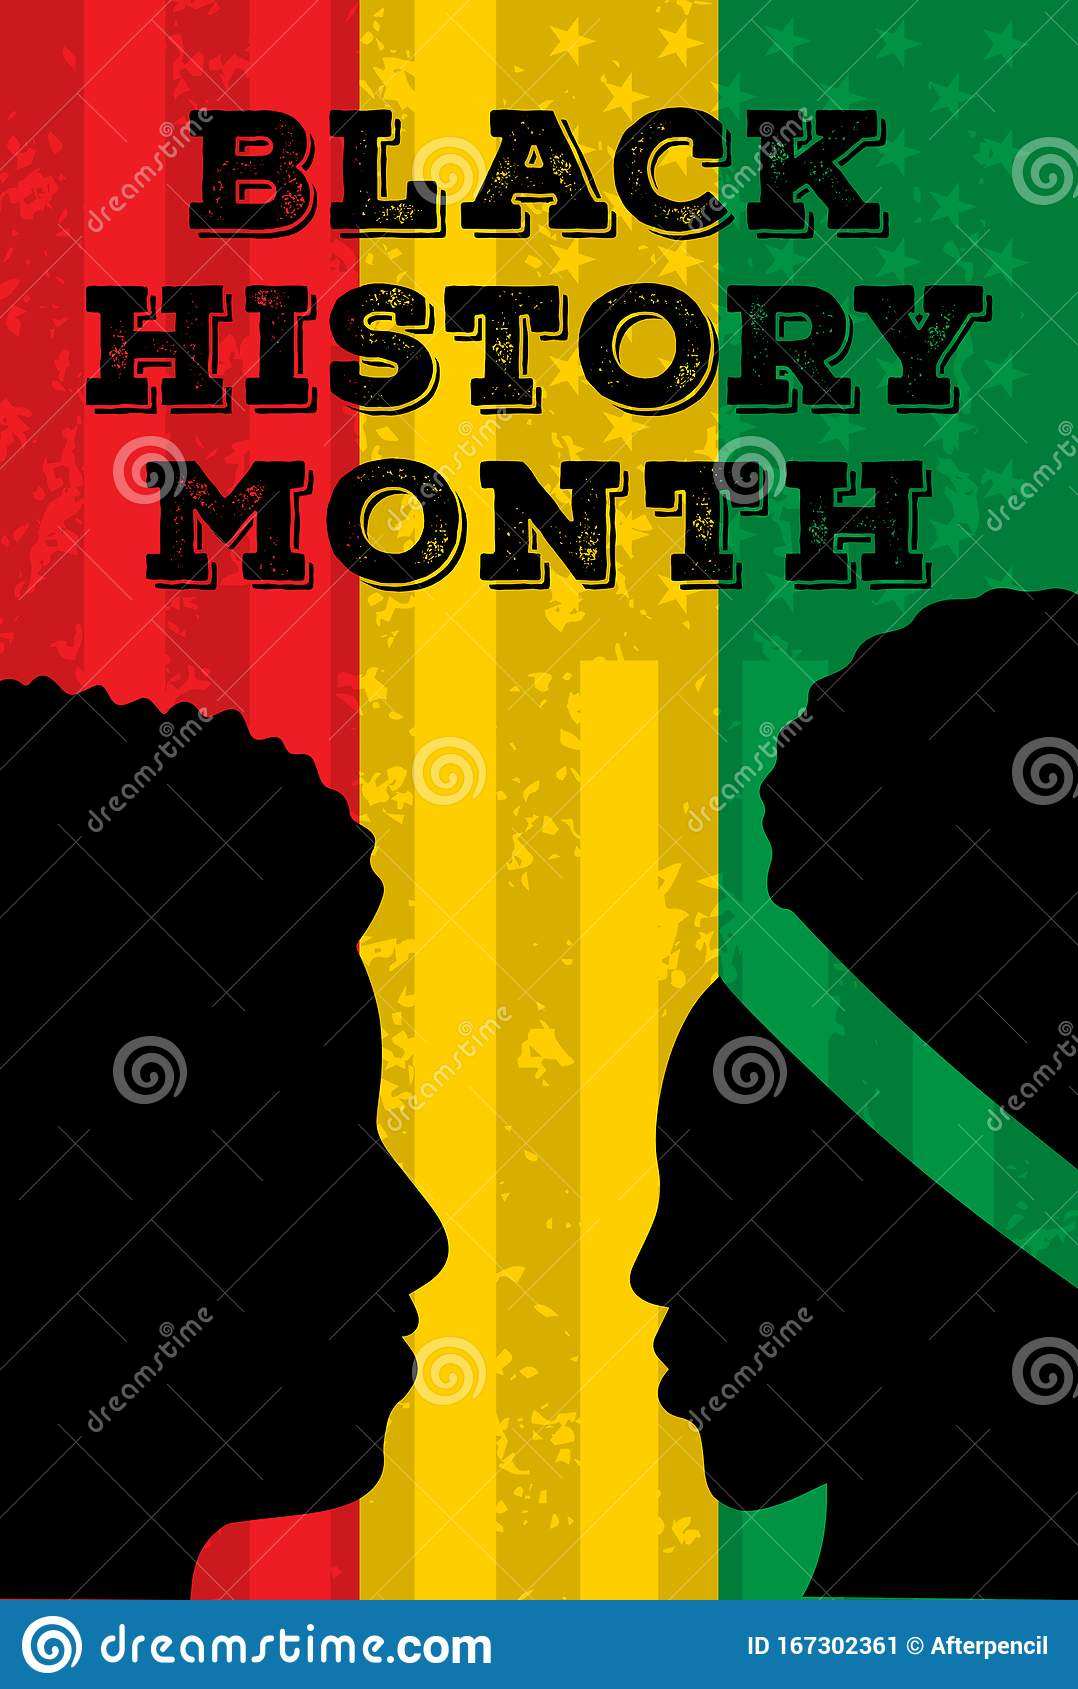 Black History Month Poster Background Vector Illustration Stock Illustration Illustration Of Event Flags 167302361